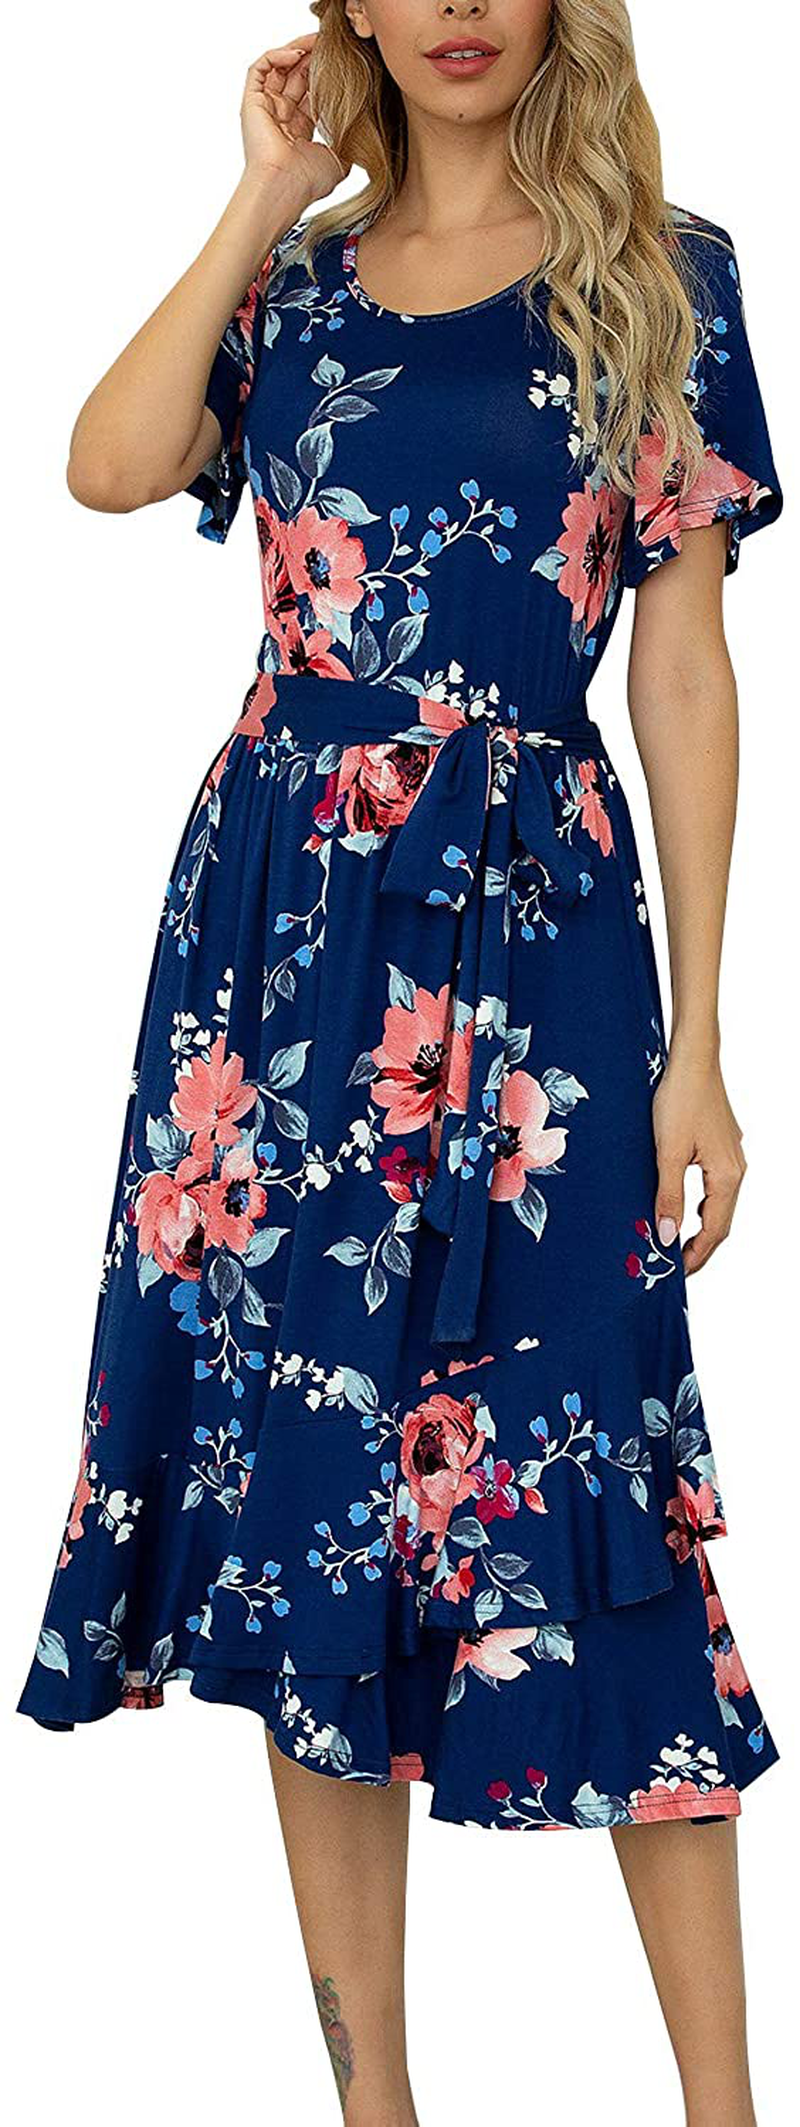 levaca Women's Plain Casual Flowy Short Sleeve Midi Dress with Belt